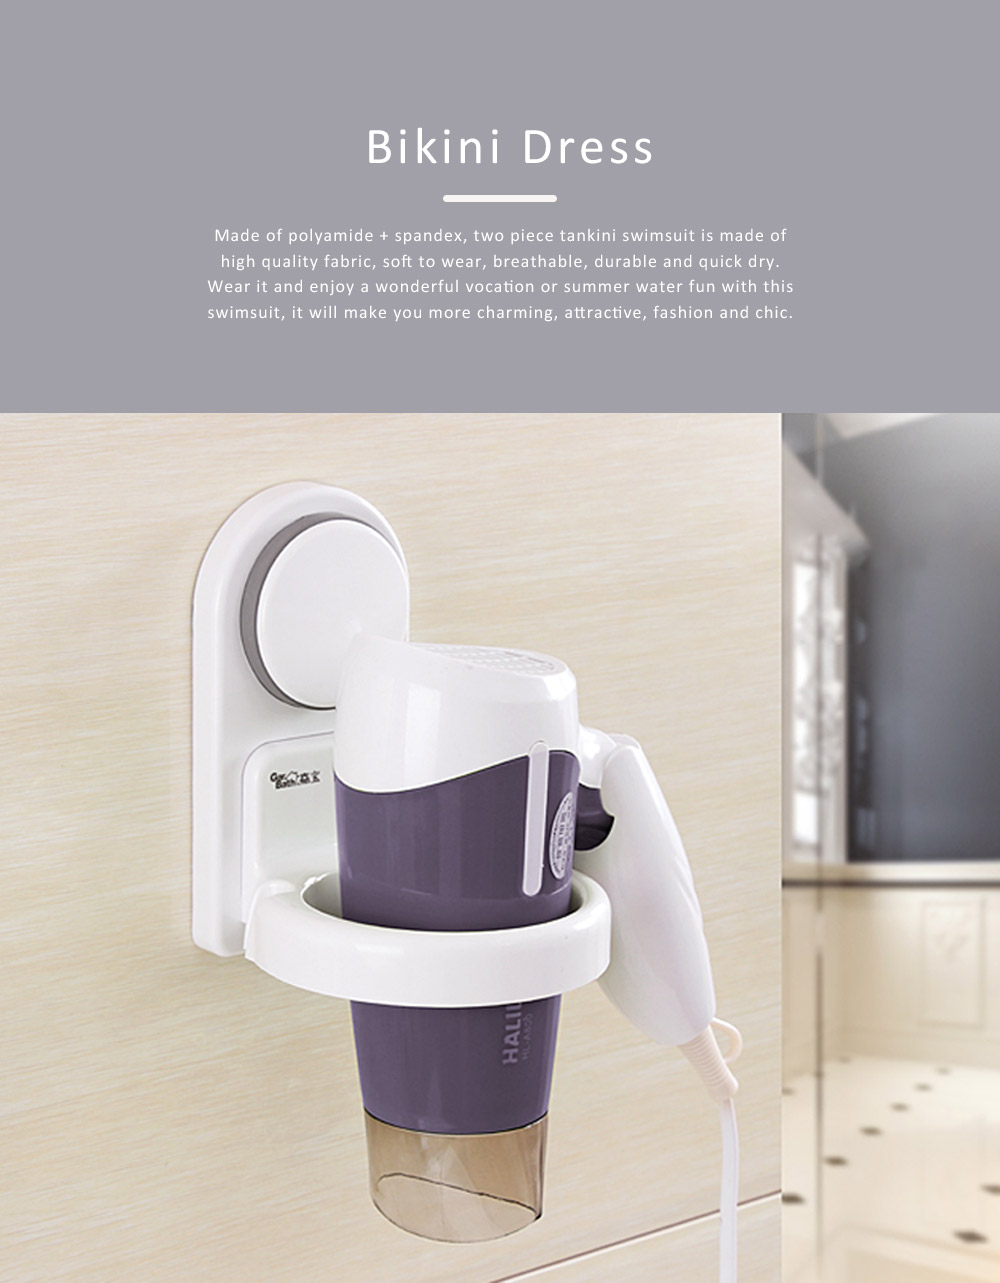 Hair Dryer Rack Portable Plastic Wall-mounted Suction Cup Storage Duct Frame for Bathroom Kitchen 0